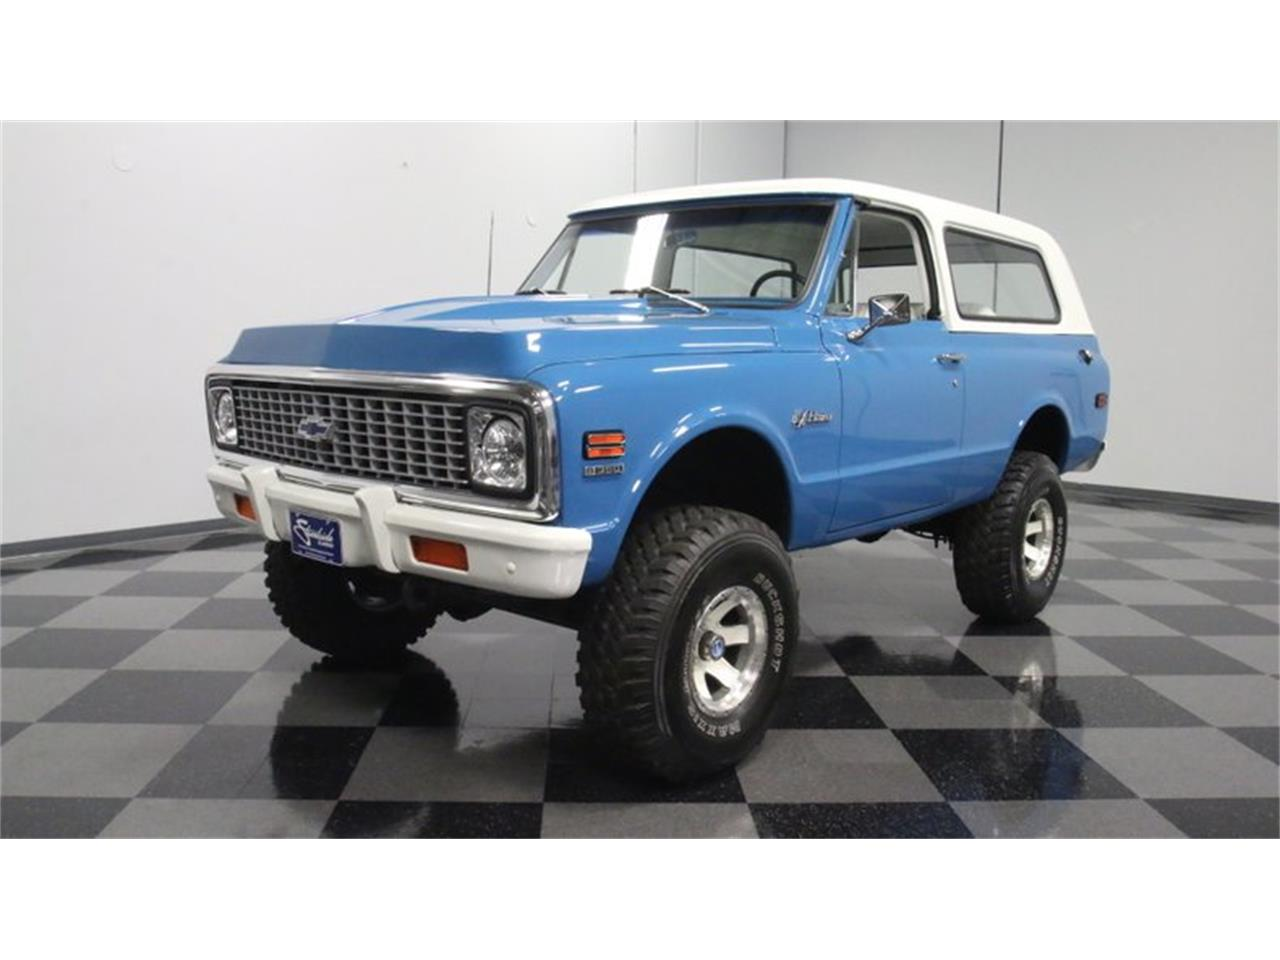 Large Picture of 1971 Chevrolet Blazer located in Lithia Springs Georgia - $52,995.00 Offered by Streetside Classics - Atlanta - PZLZ